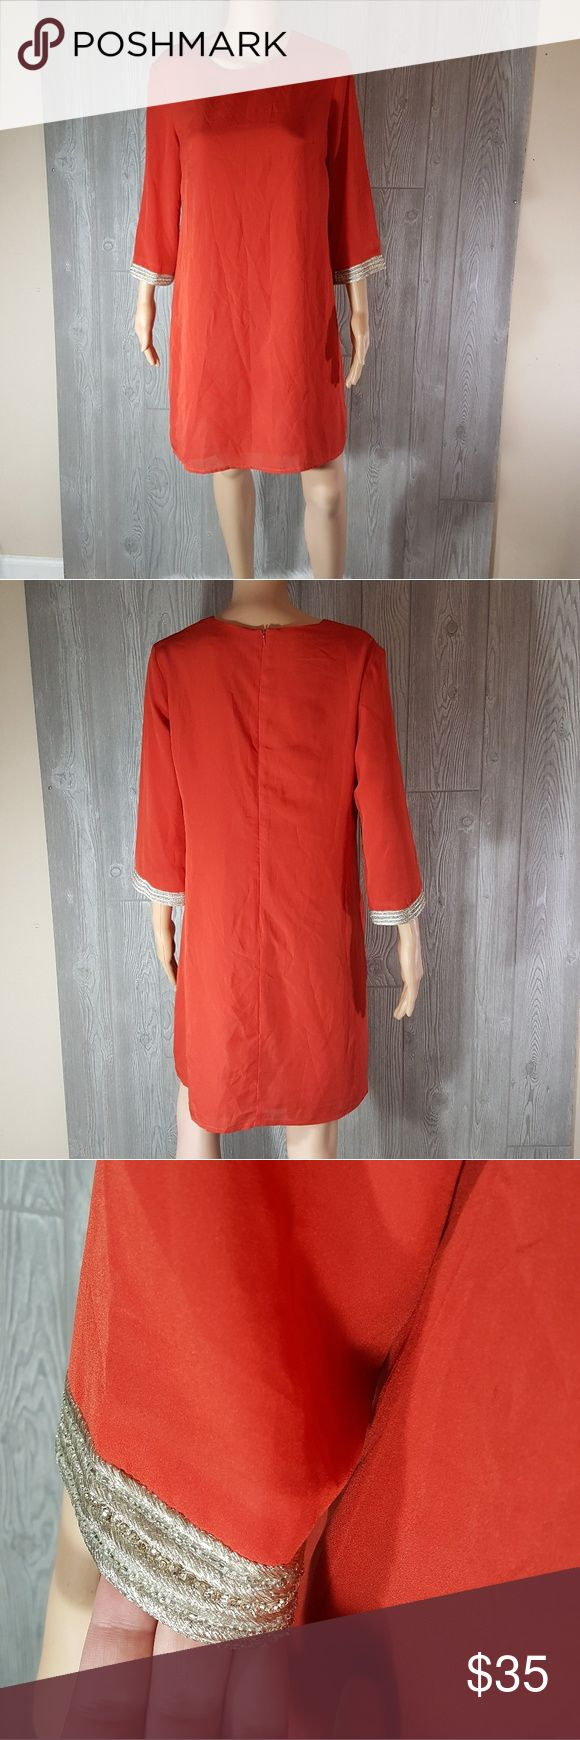 Med MM by Miss Me embellished  boho peasant dress Very pretty burnt orange dress with gold embelish on quarter sleeves. Size medium. Mm couture by miss me. Excellent condition. Small Mark pointing to and picture with sleeve measurement. Burnt orange meaning a reddish orange color MM Couture Dresses Midi